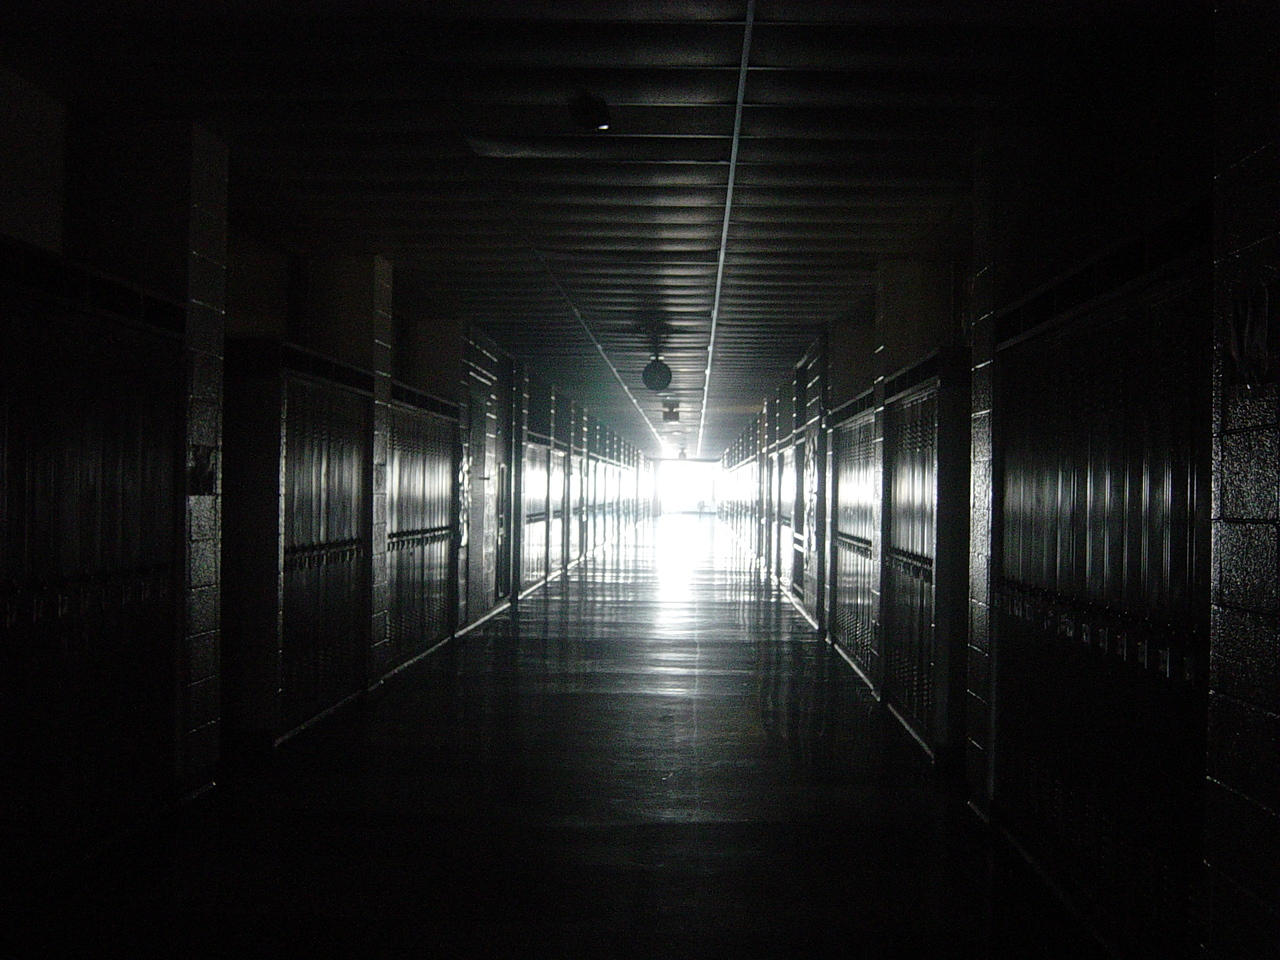 Scary Hallway Background Car Pictures Car Canyon - Dark creepy basement